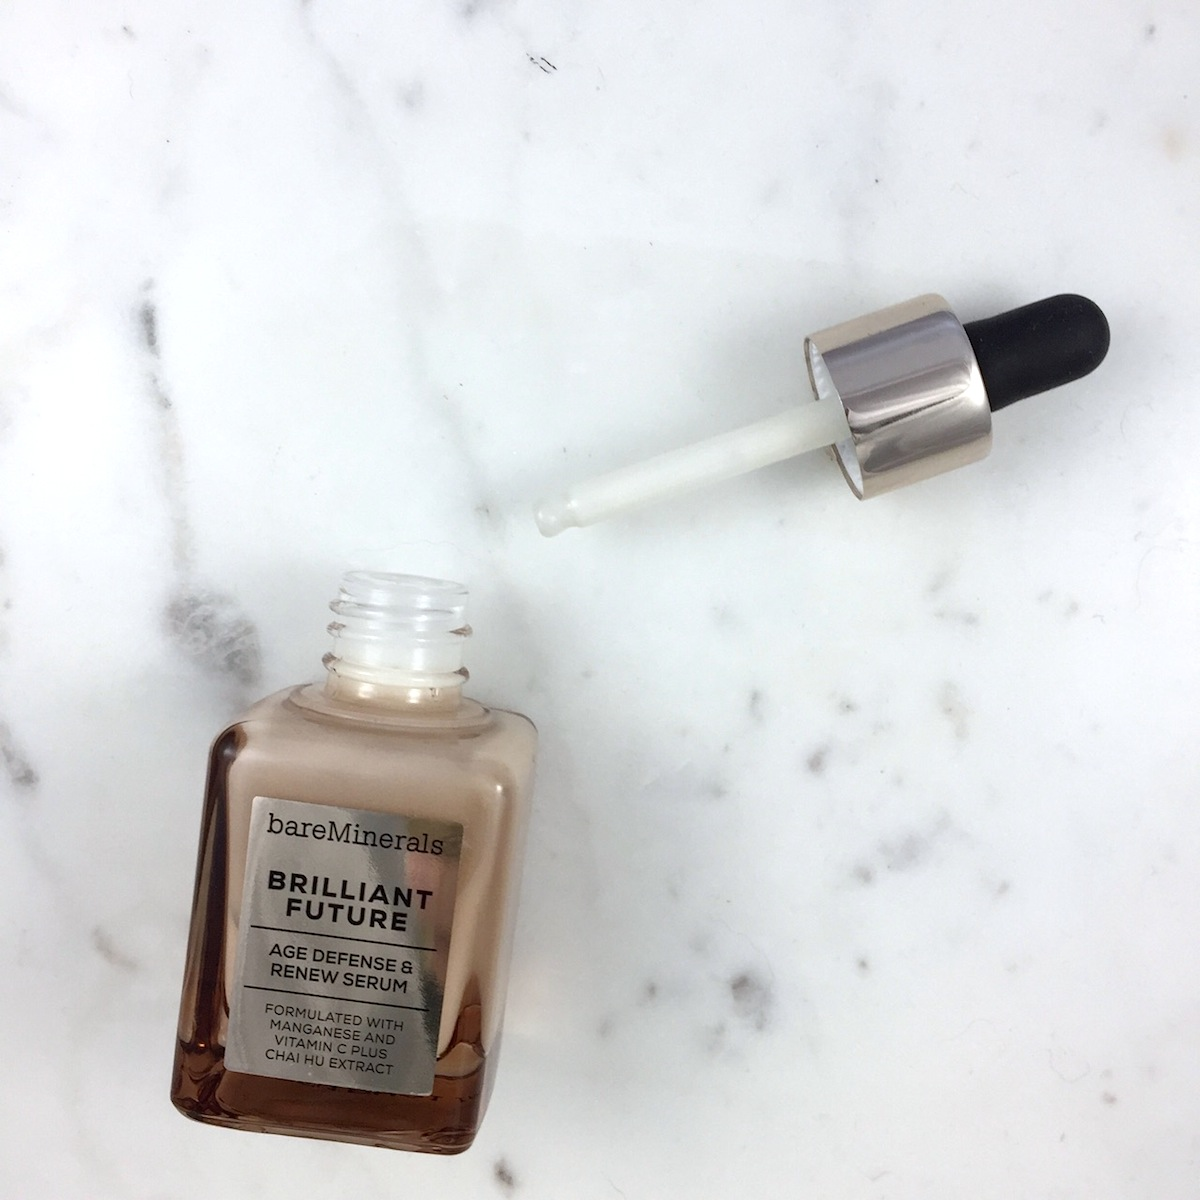 Bare Minerals Brilliant Future Age Defense and Renew Serum: A quick review